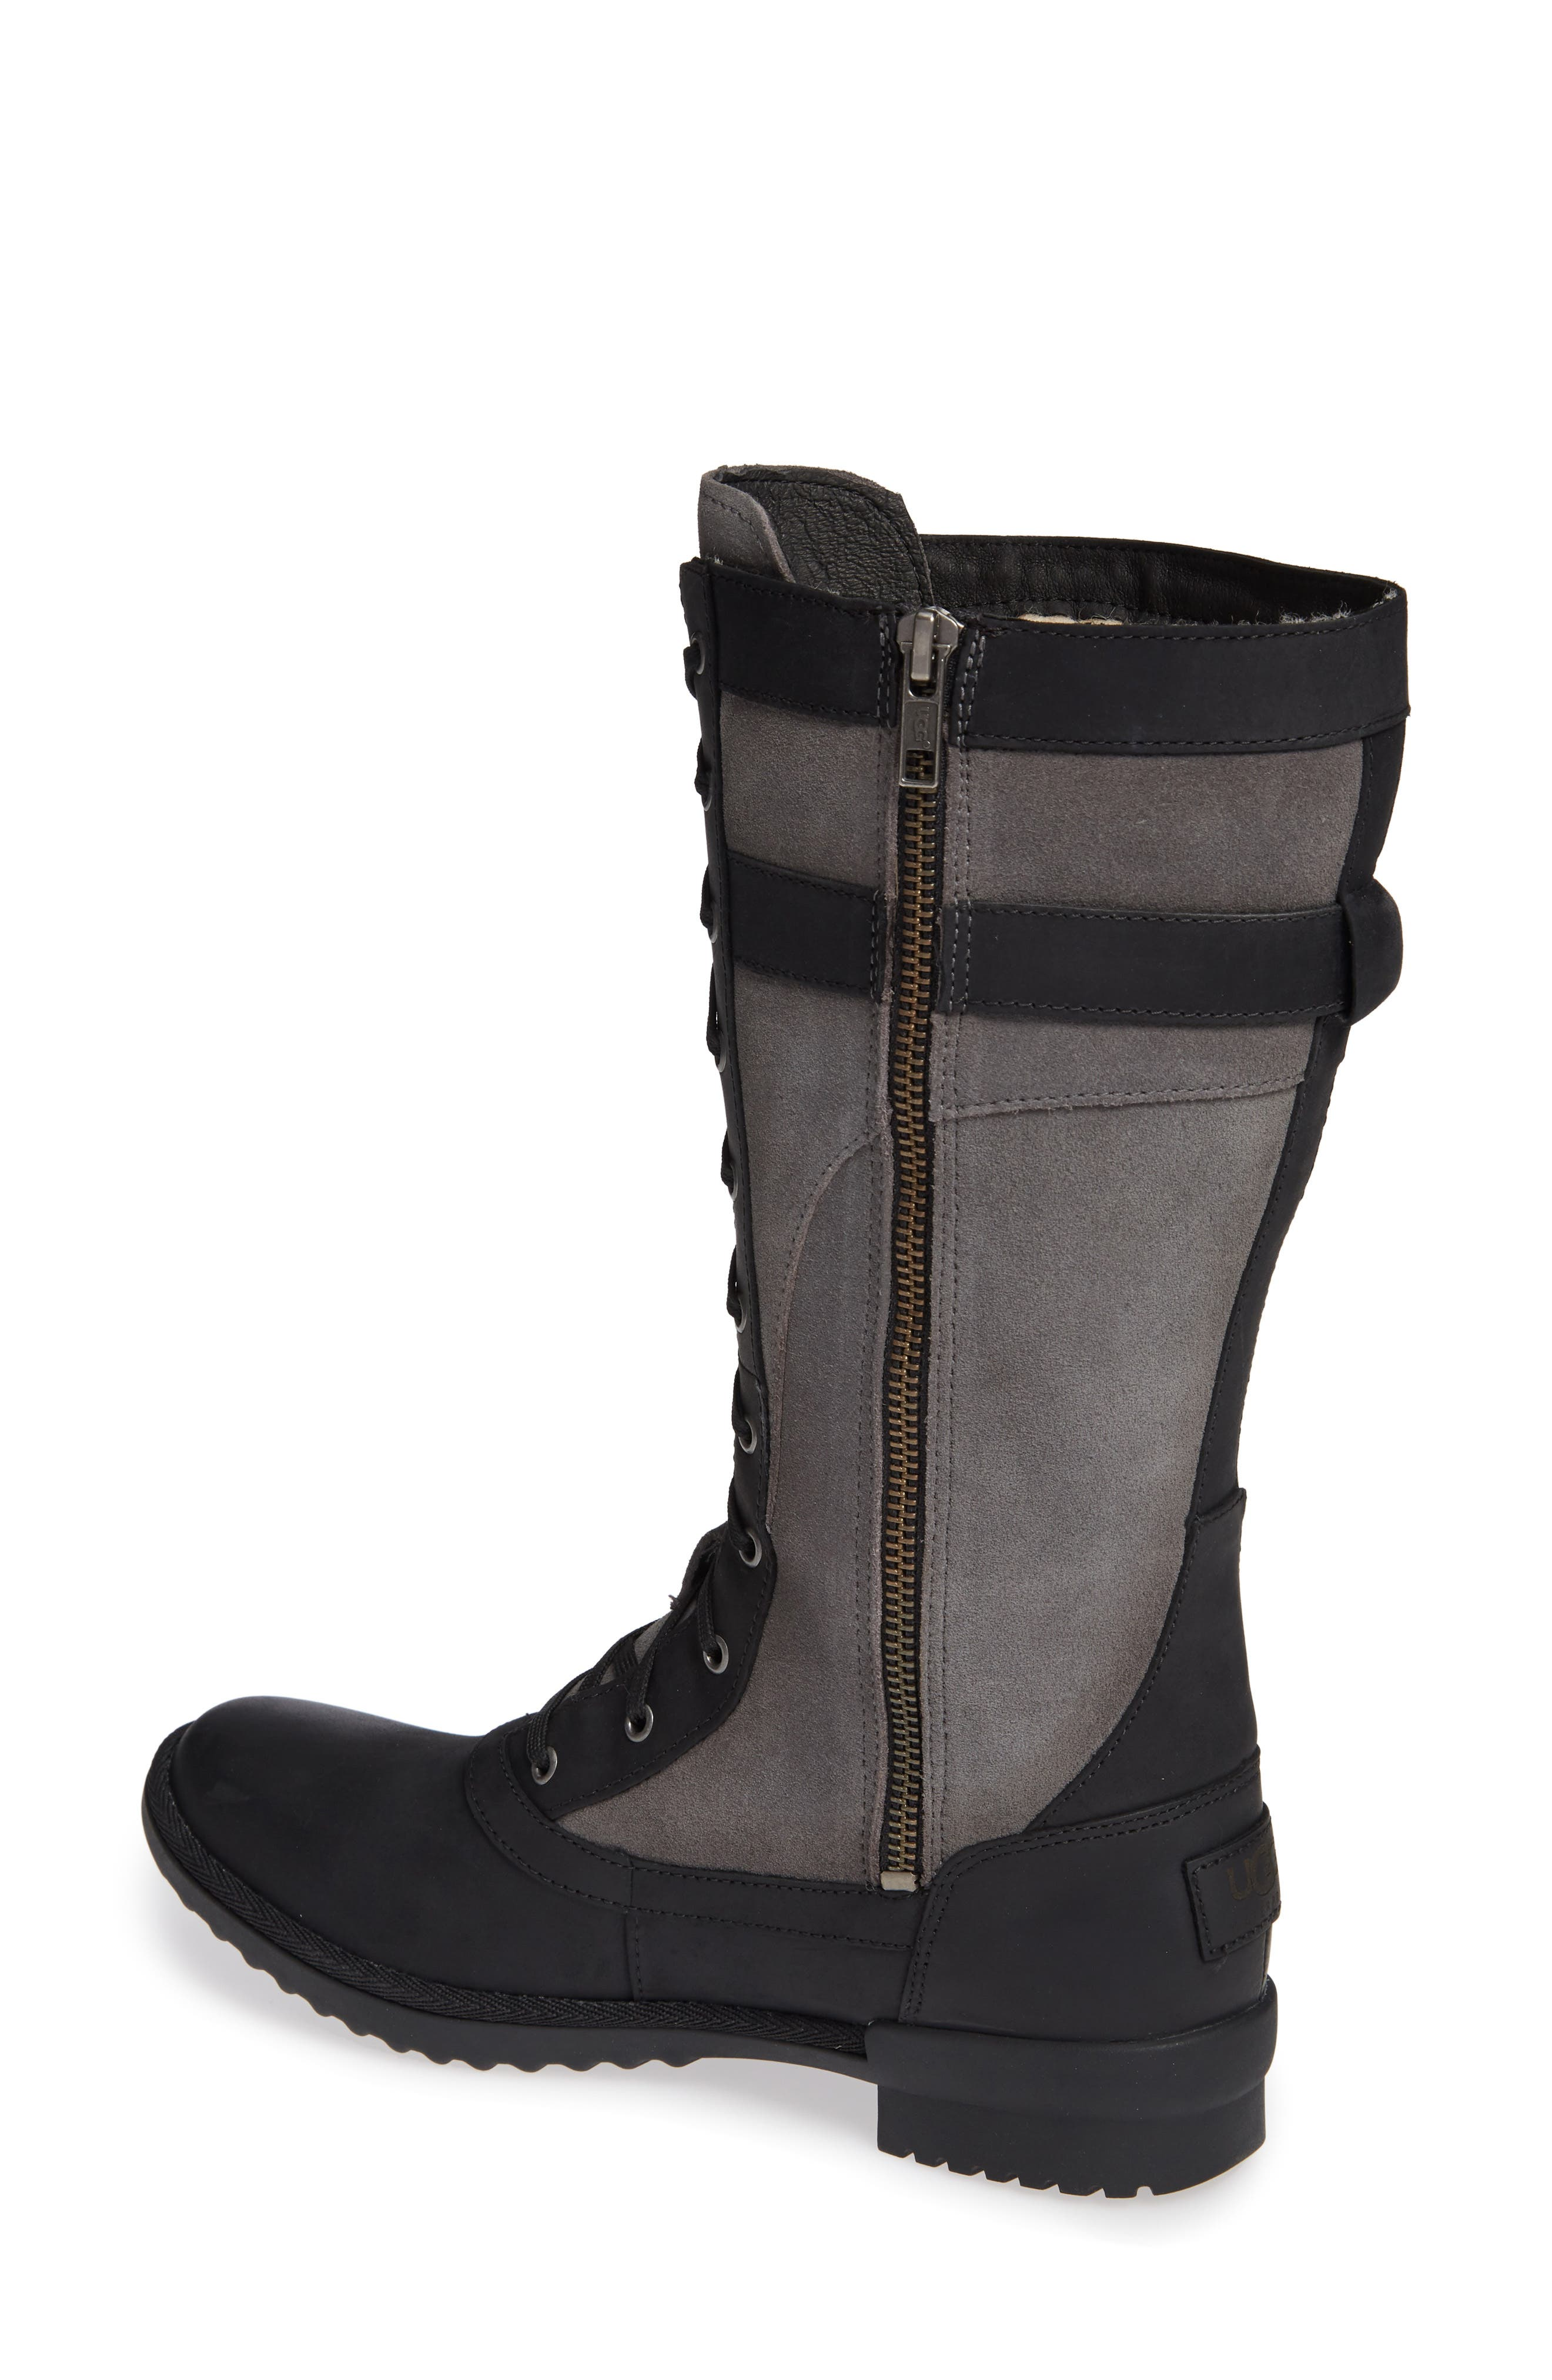 Brystl Waterproof Insulated Boot,                             Alternate thumbnail 2, color,                             BLACK